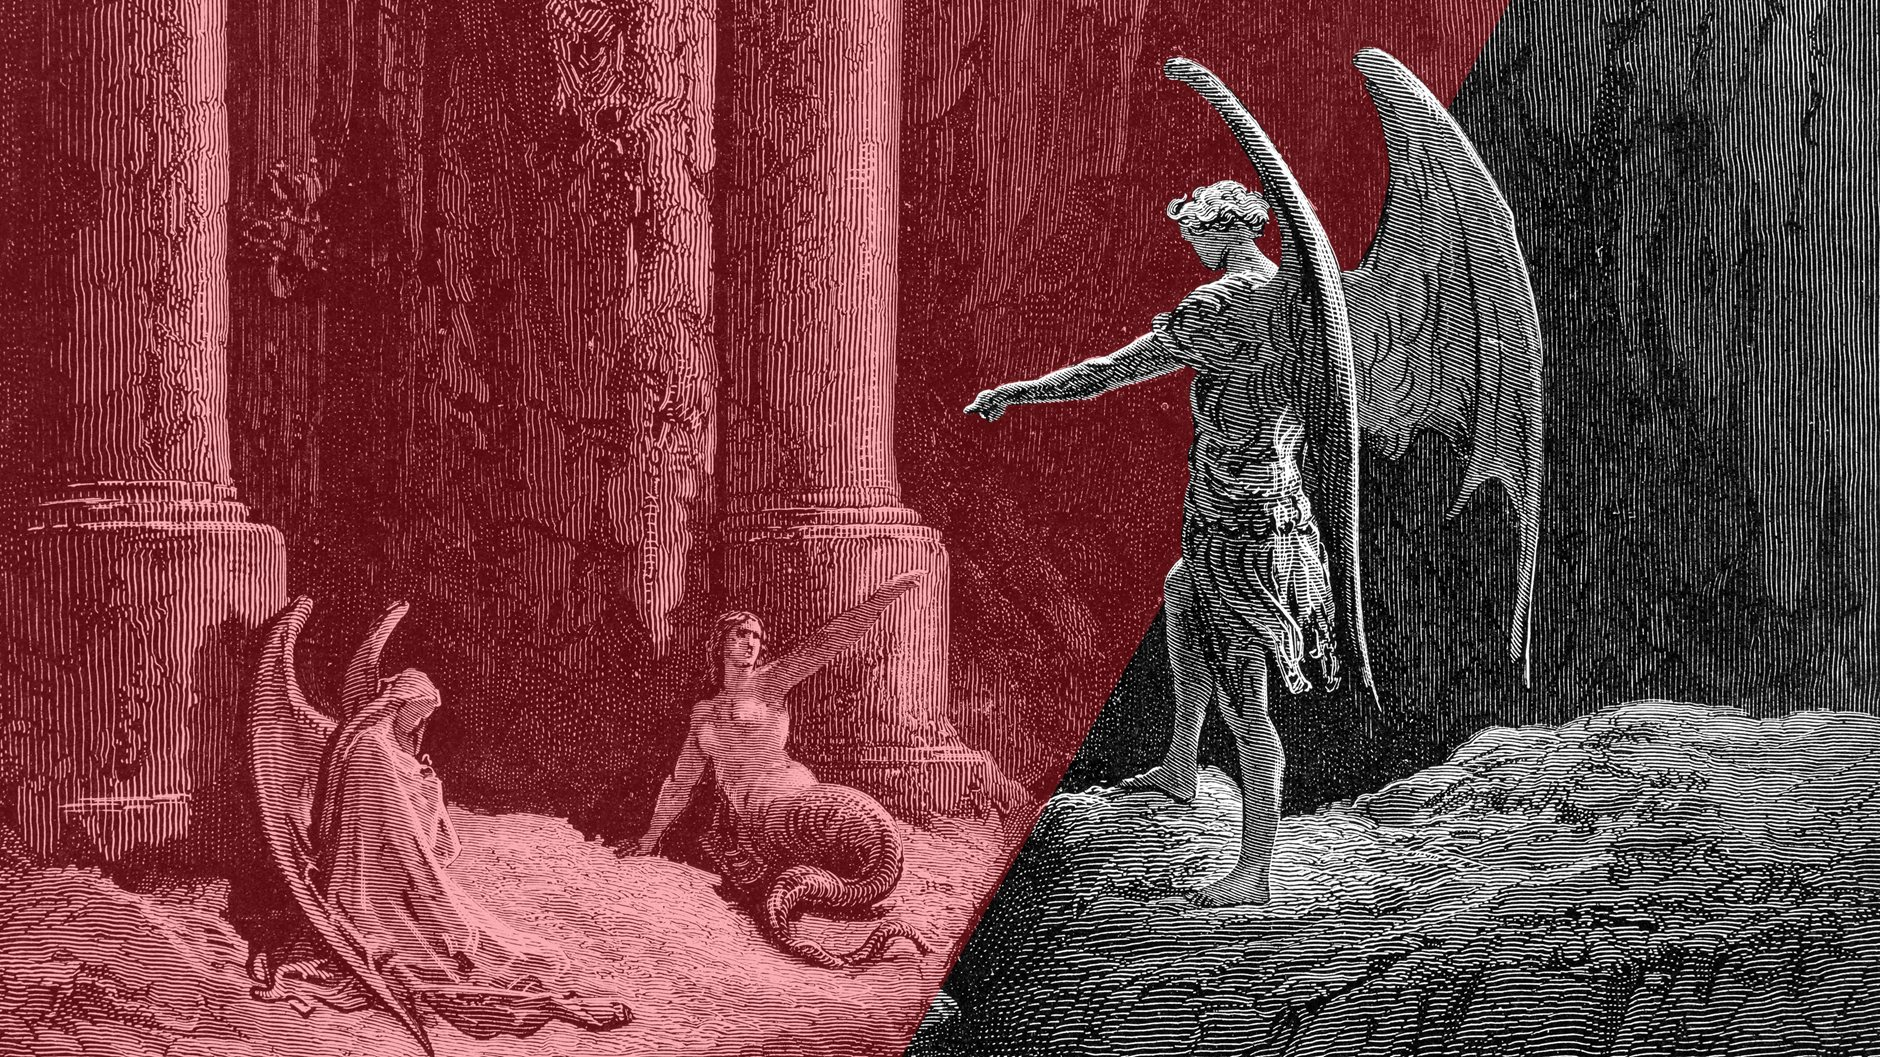 Engraving by Gustave Dore.